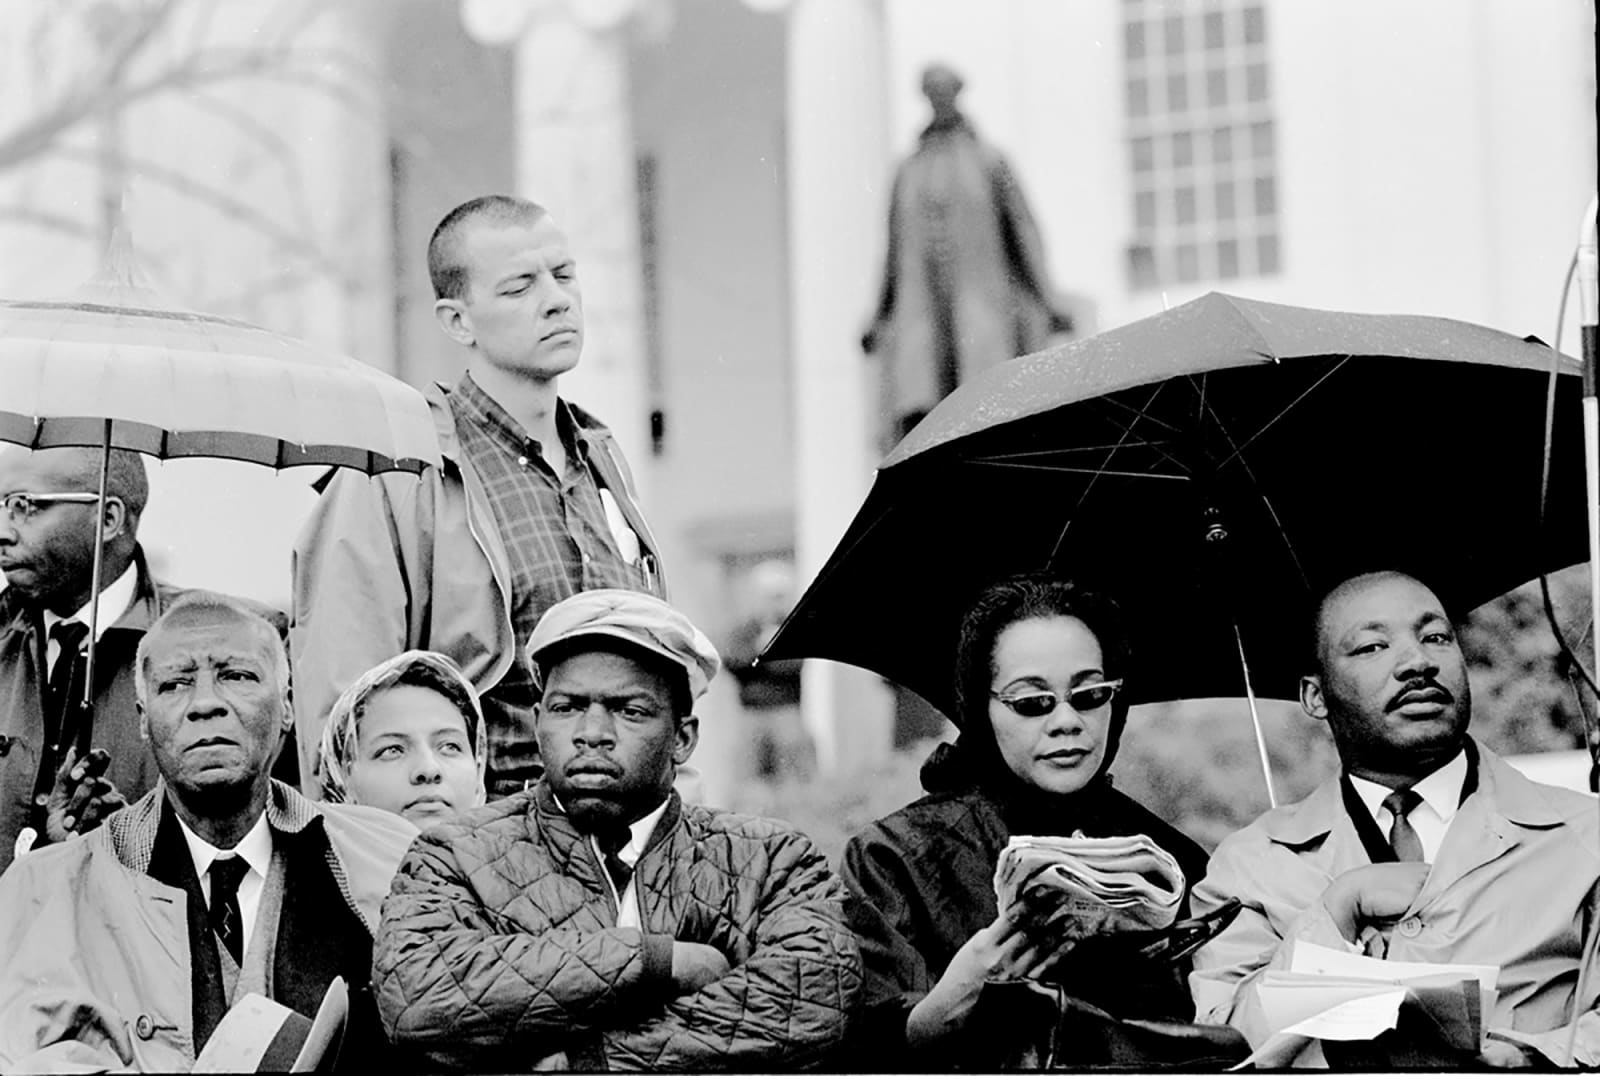 Steve Schapiro Philip Randolph, John Lewis, Coretta Scott King, and Martin Luther King on the Steps of Montgomery Capitol after the Selma March concluded, 1965